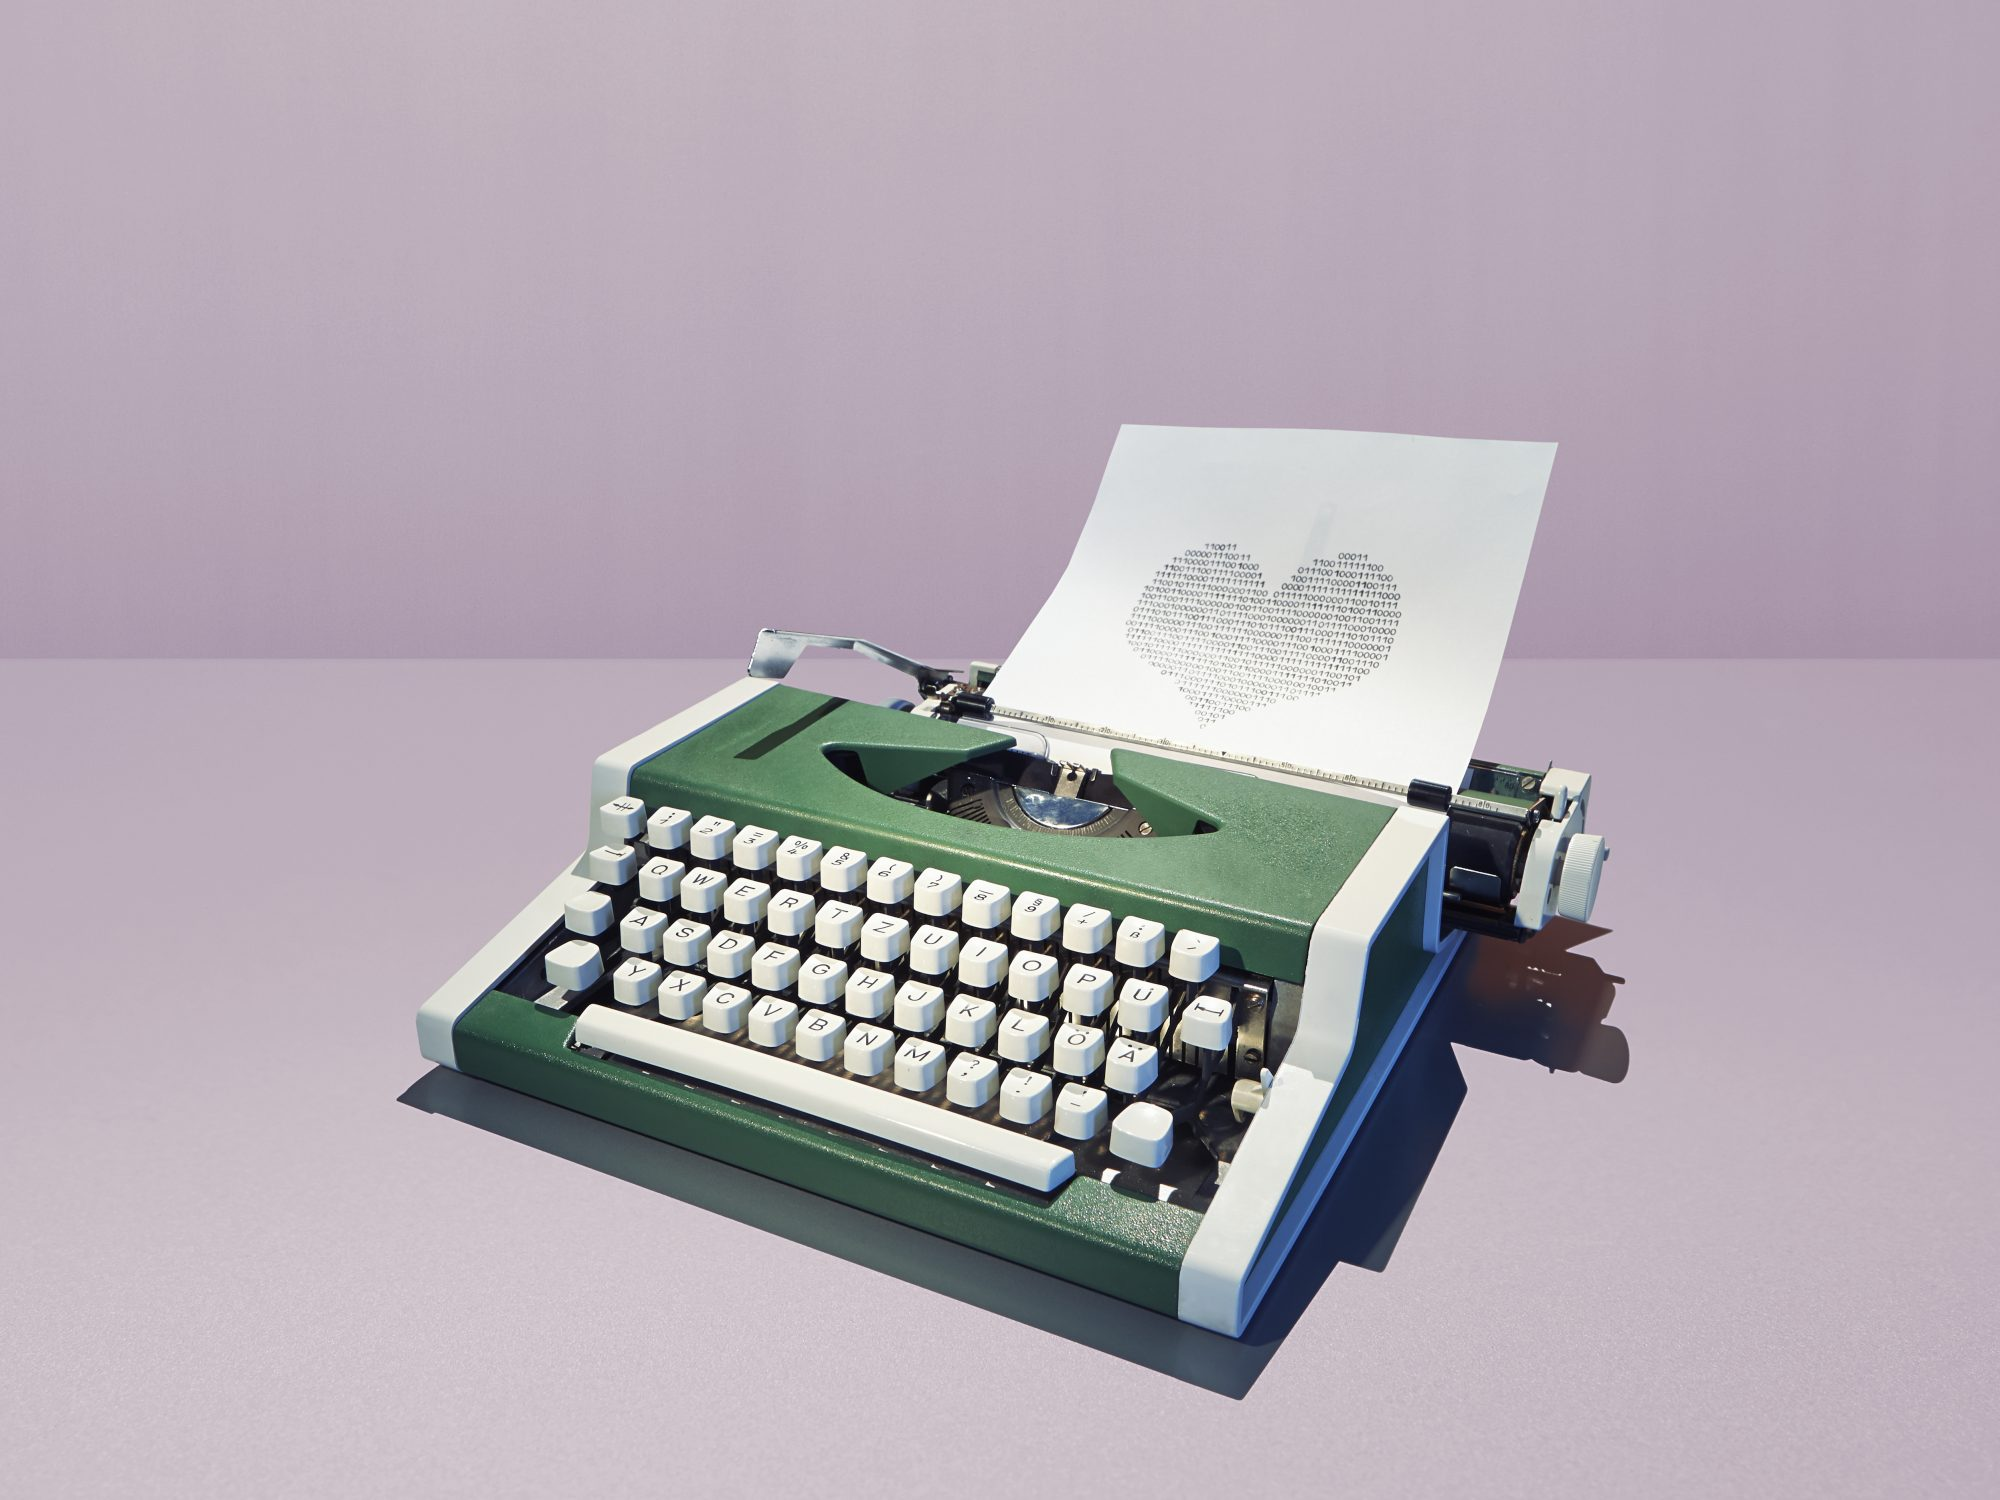 Image of typewriter with love letter